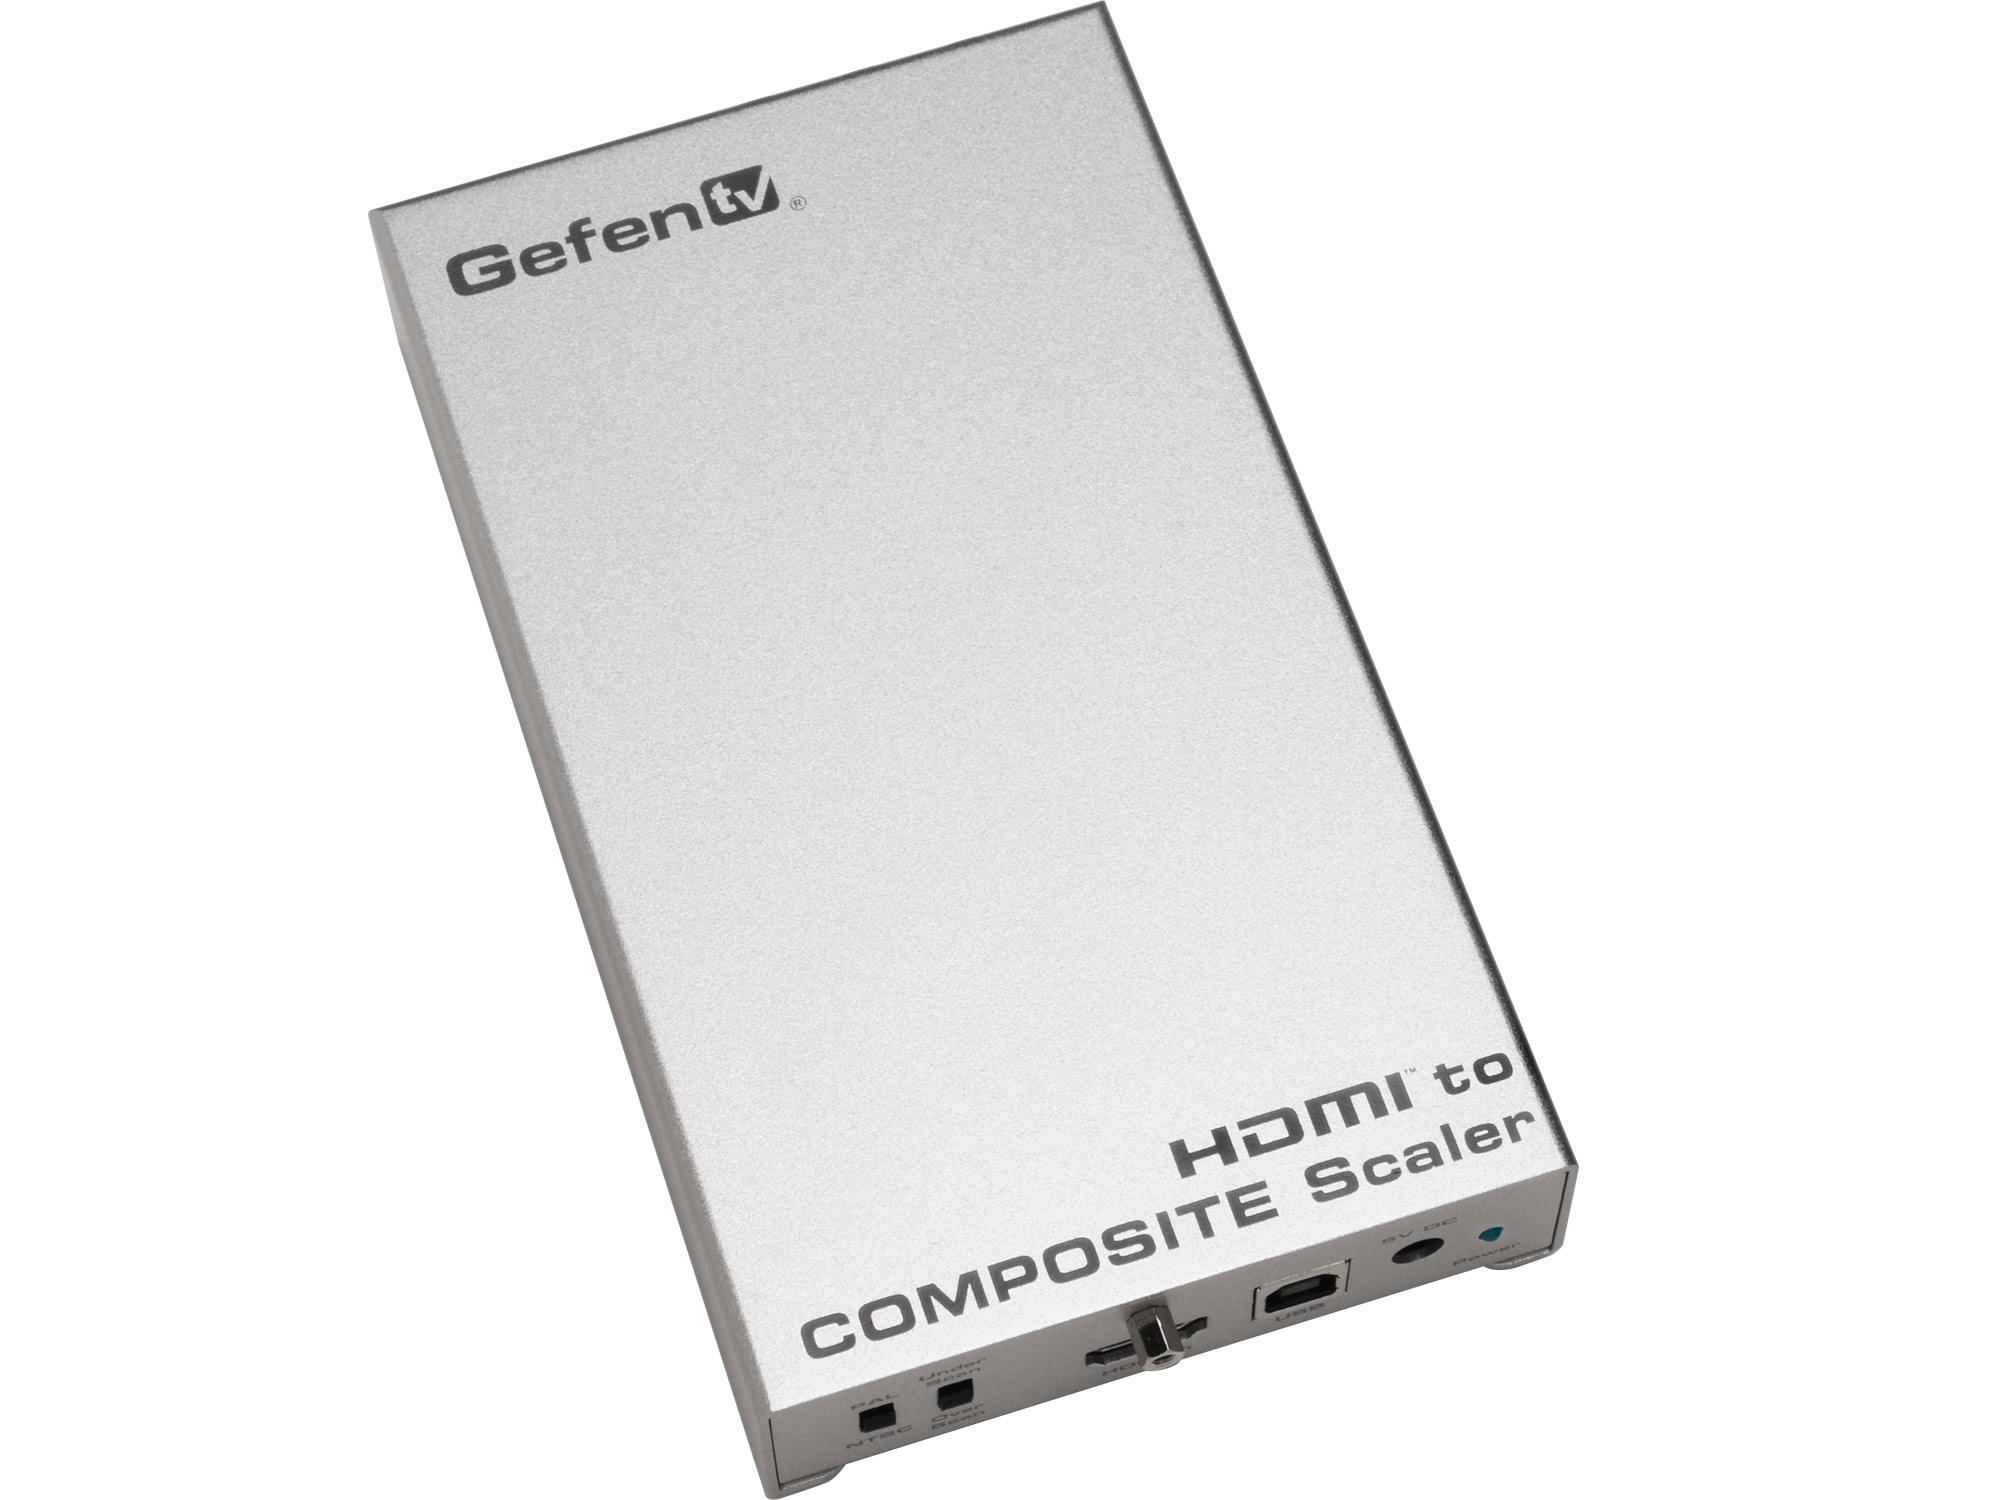 Gefen GTV-HDMI-2-COMPSVIDSN HDMI to Composite / S-Video Scaler